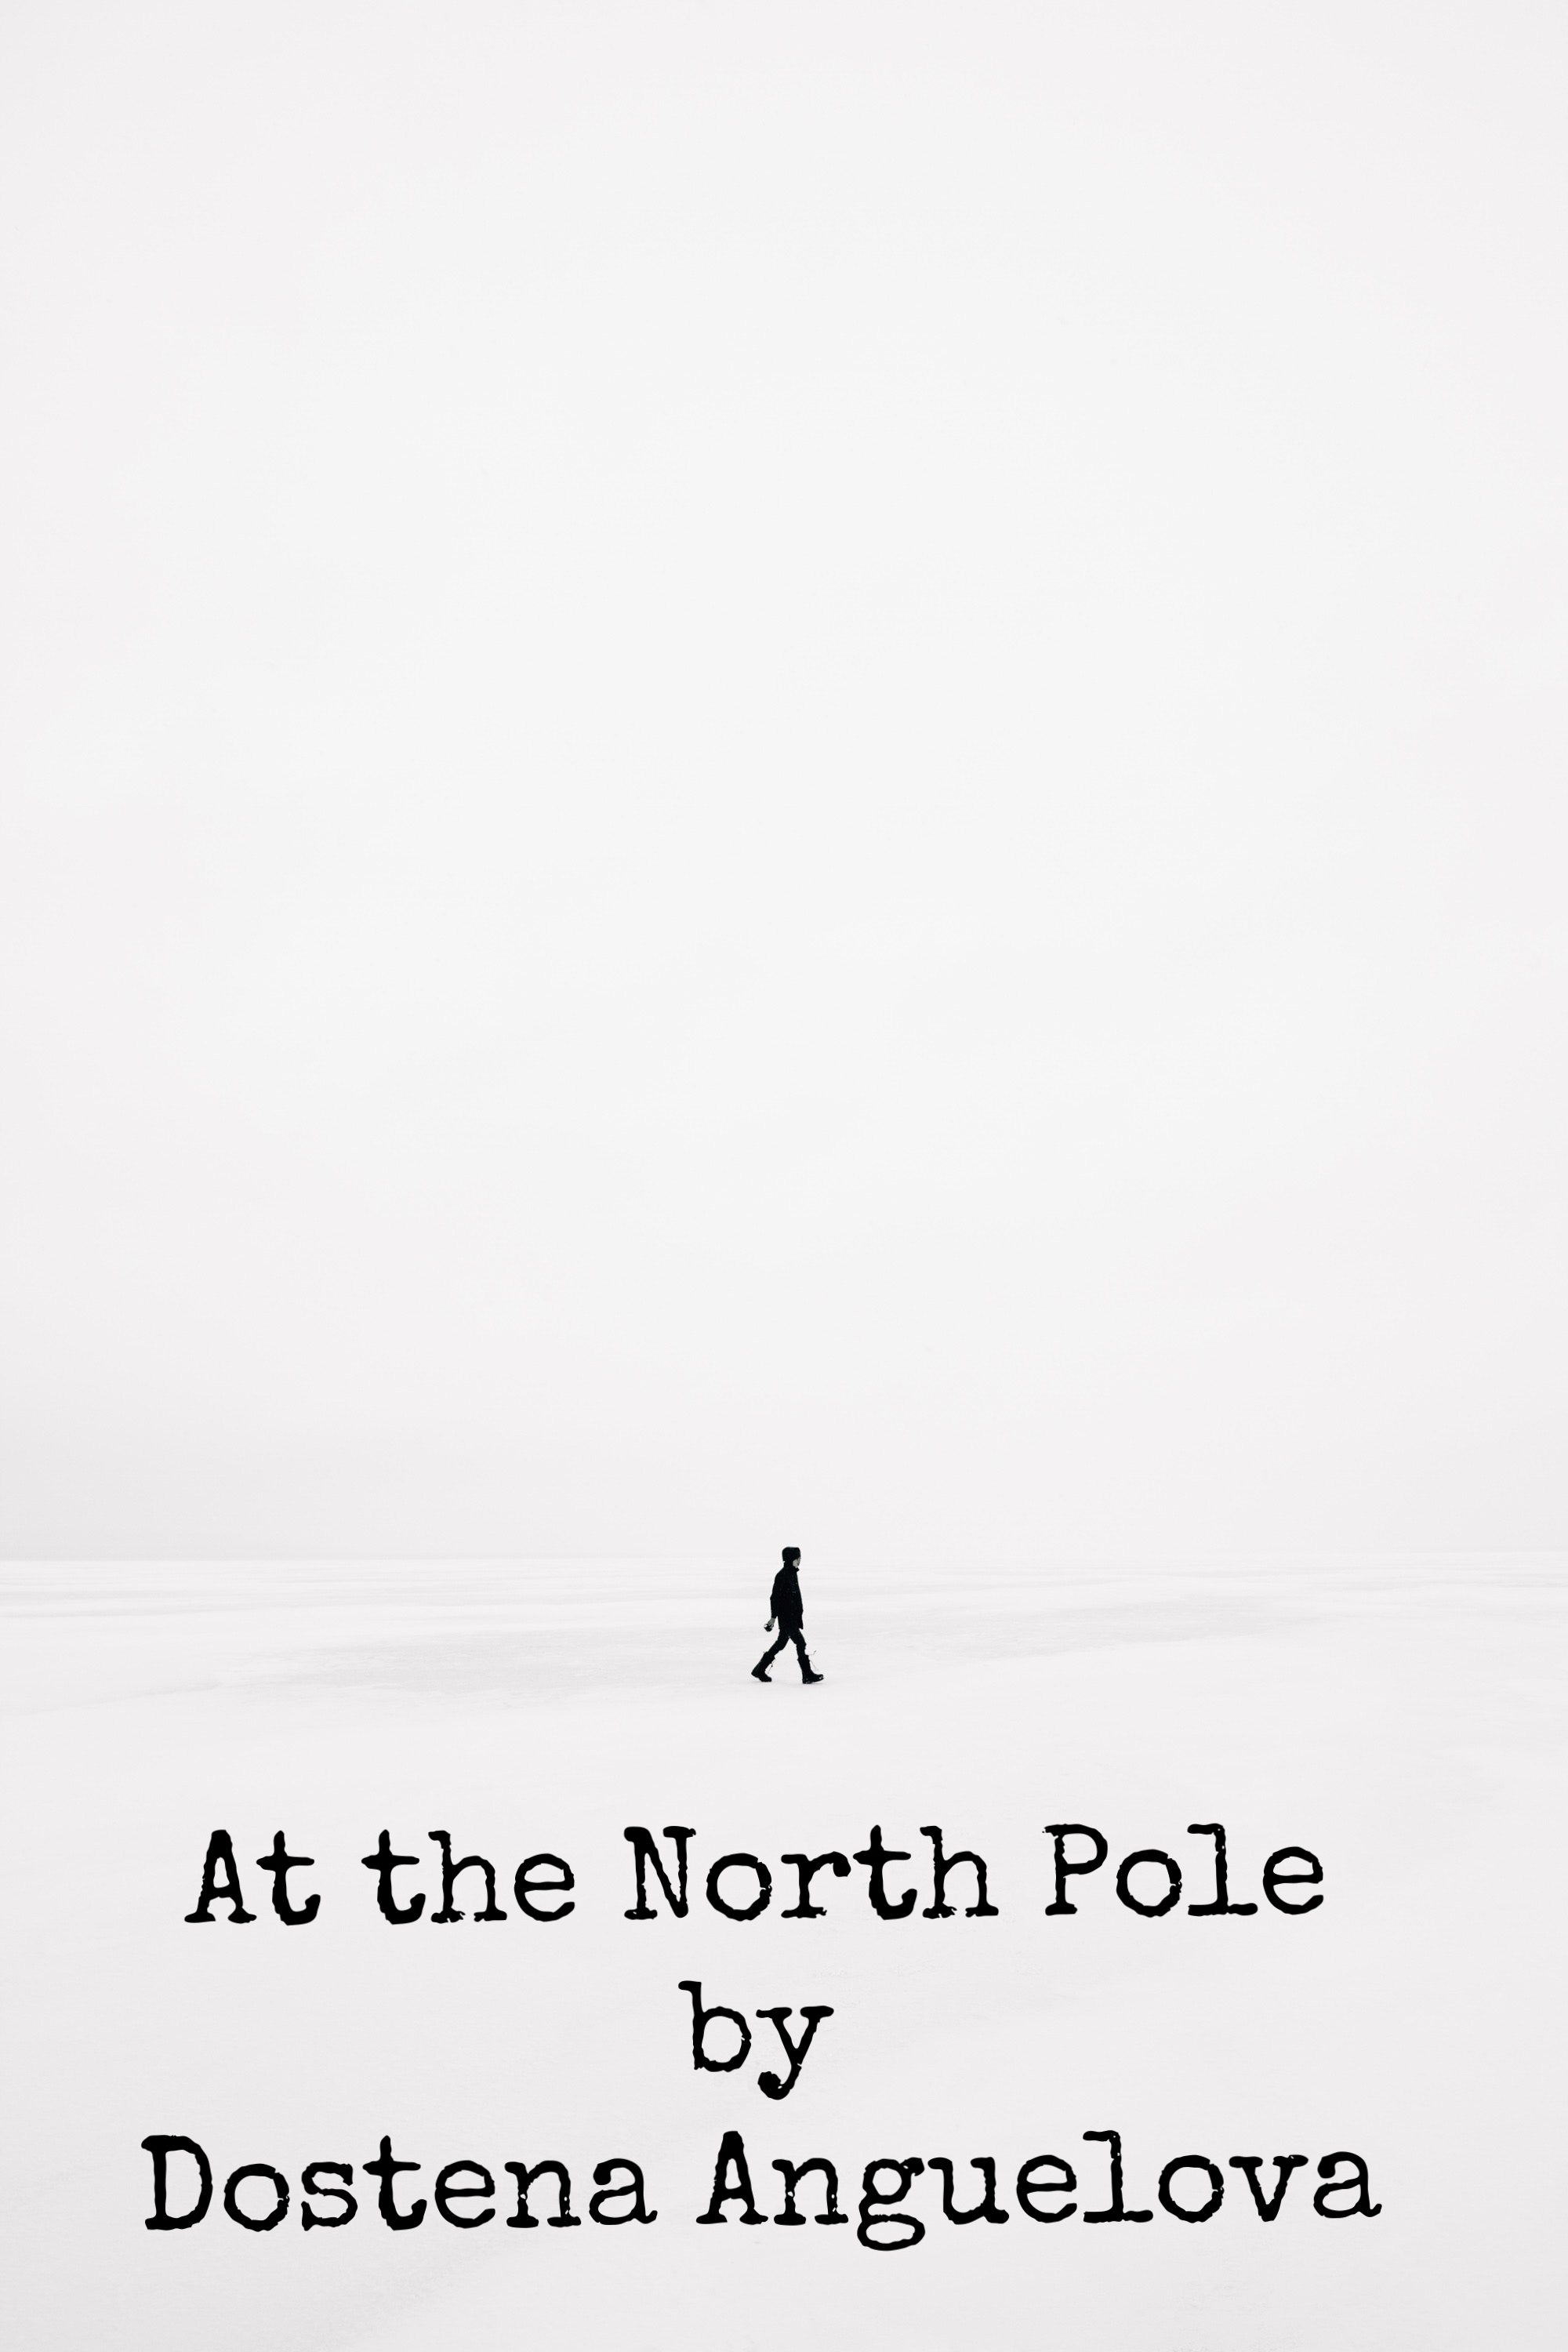 At the North Pole